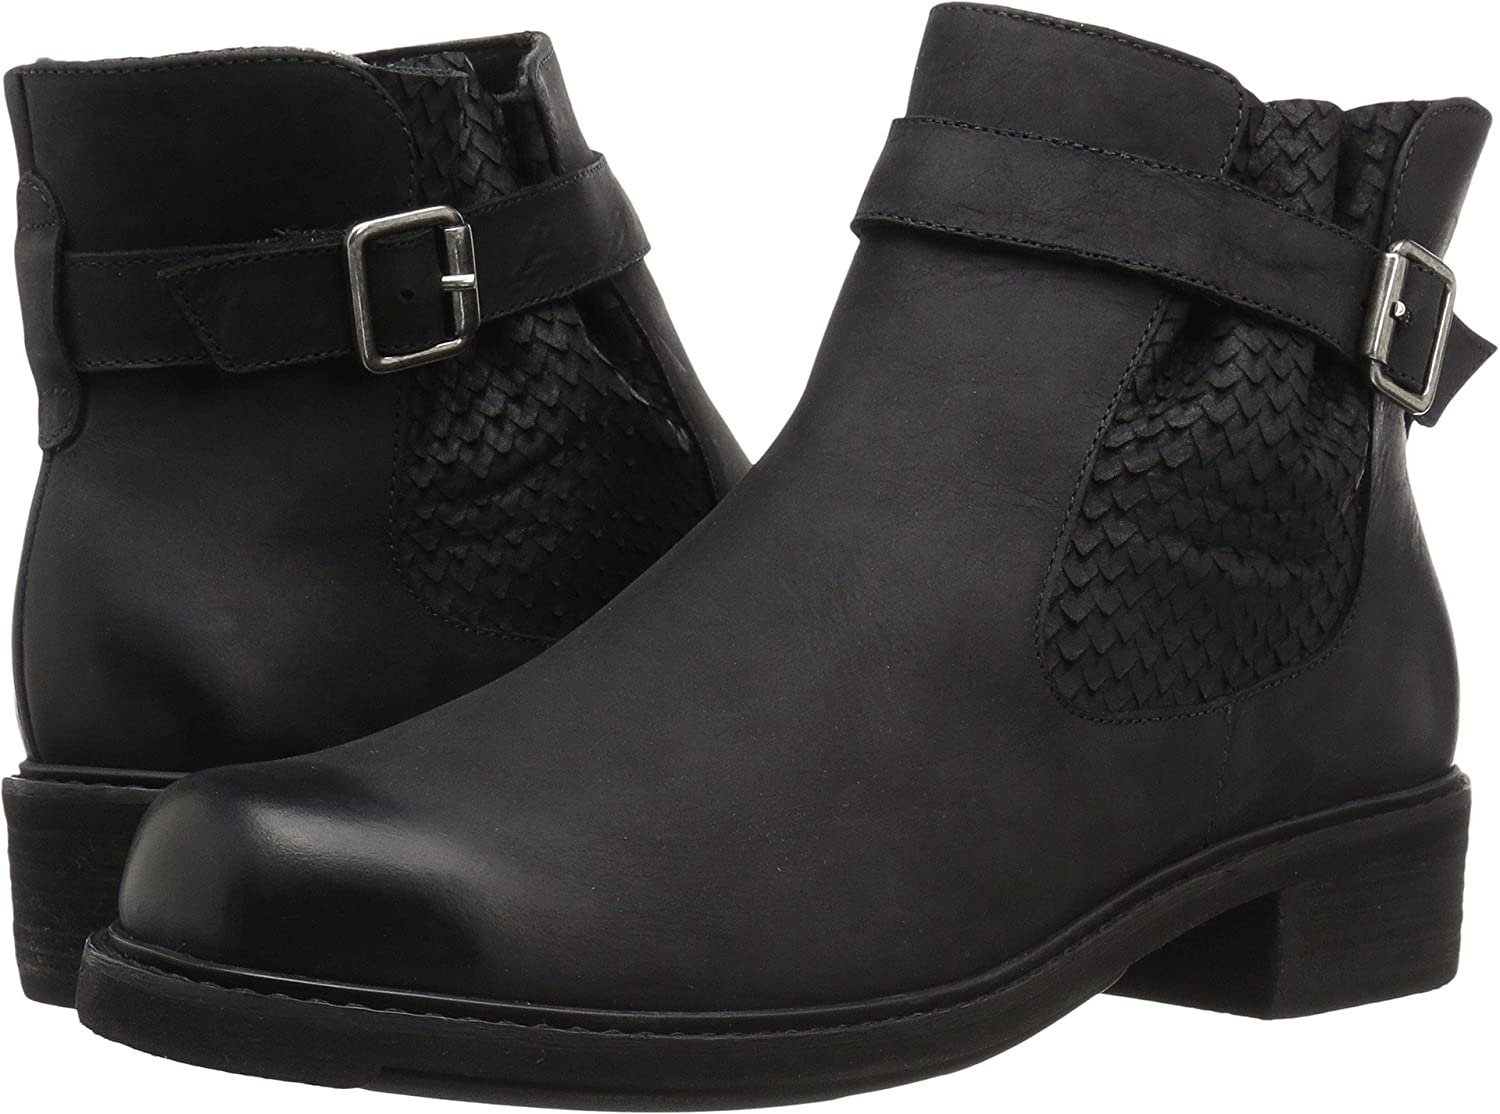 Walking Cradles Women's Devin Ankle Boot B07658XP77 4.5 B(M) US|Black Distressed Leather